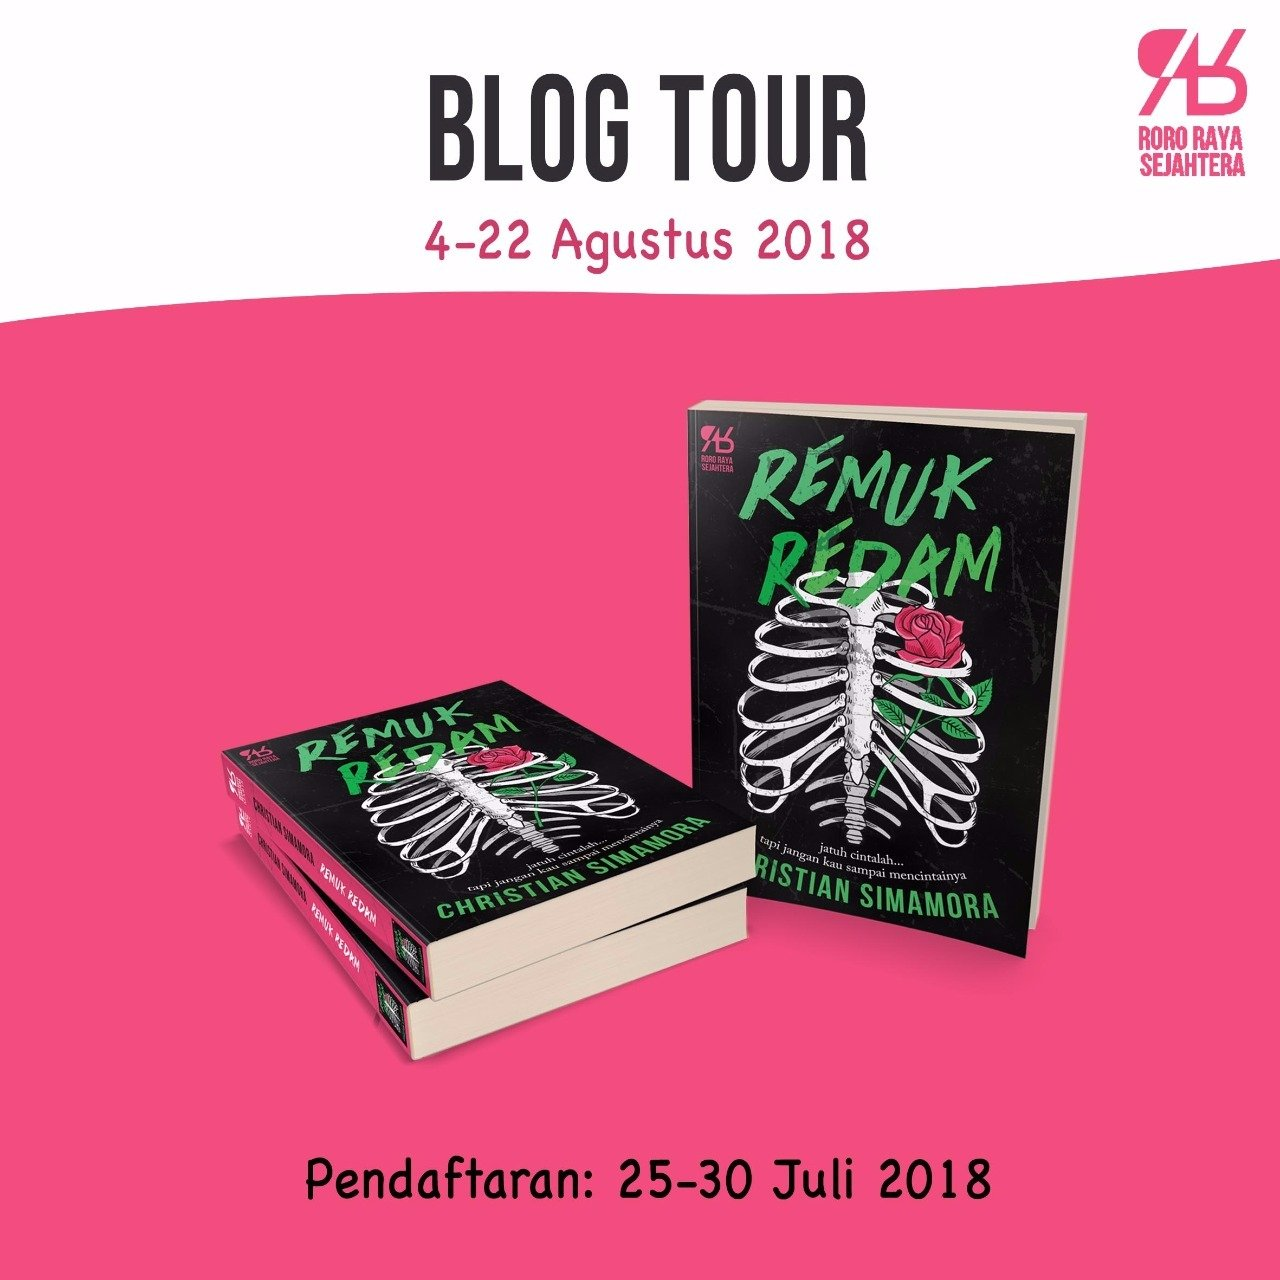 BLOG TOUR REMUK REDAM